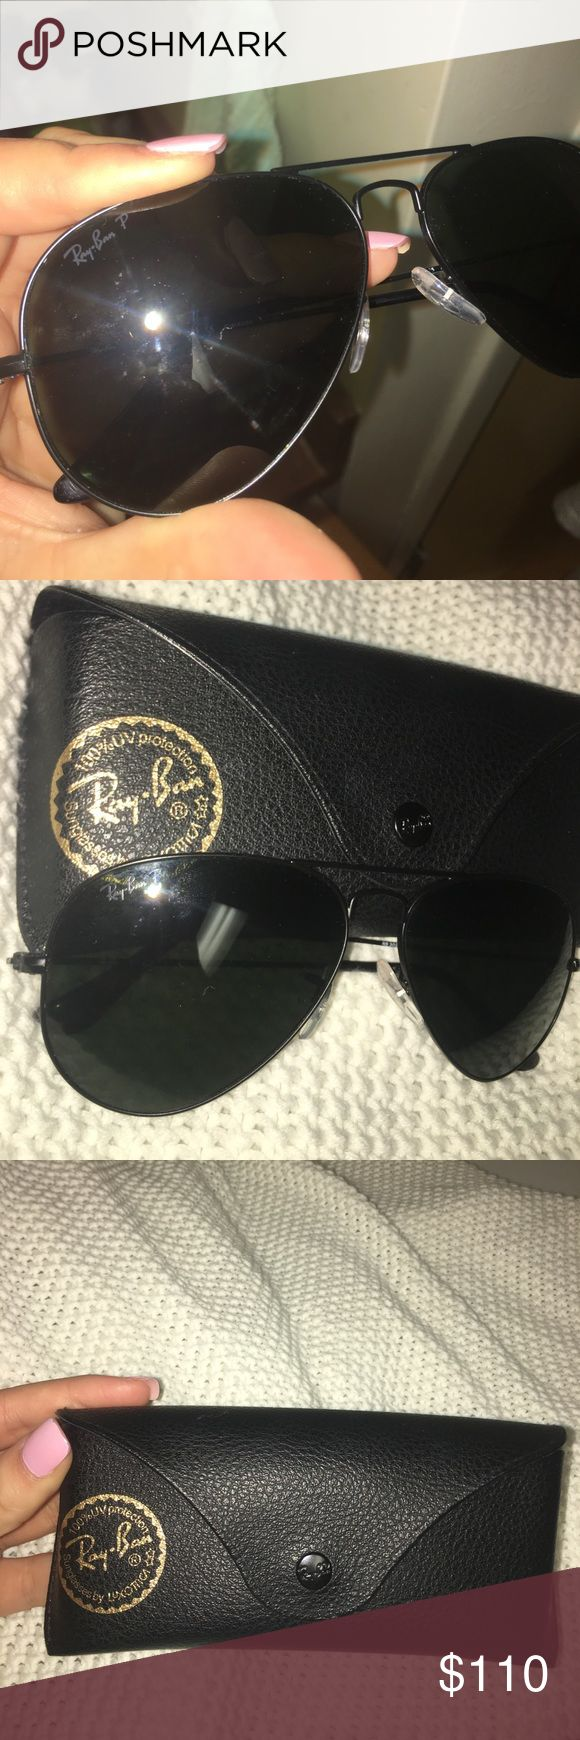 ALL BLACK RAY BANS - POLARIZED Ray Ban black aviators. Polarized. Comes with case. Bought at sunglasses hut. Ray-Ban Accessories Sunglasses